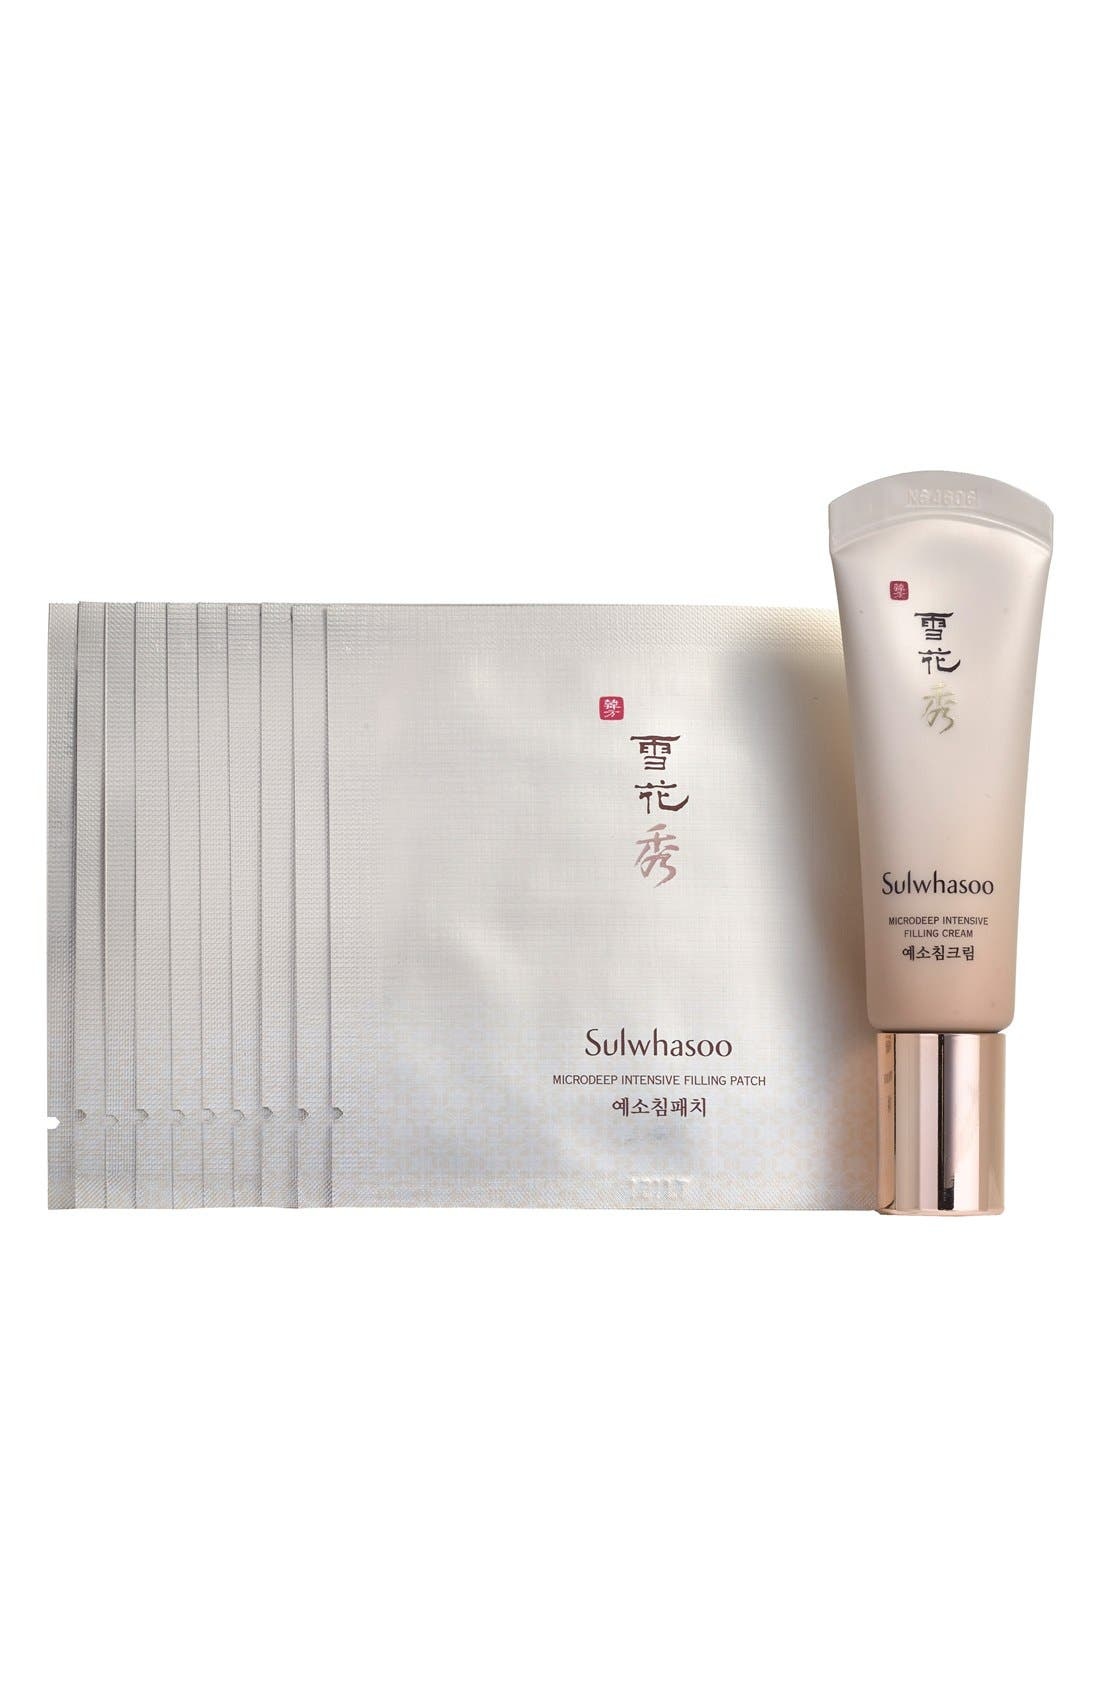 Sulwhasoo Microdeep Intensive Filling Cream & Patch Duo